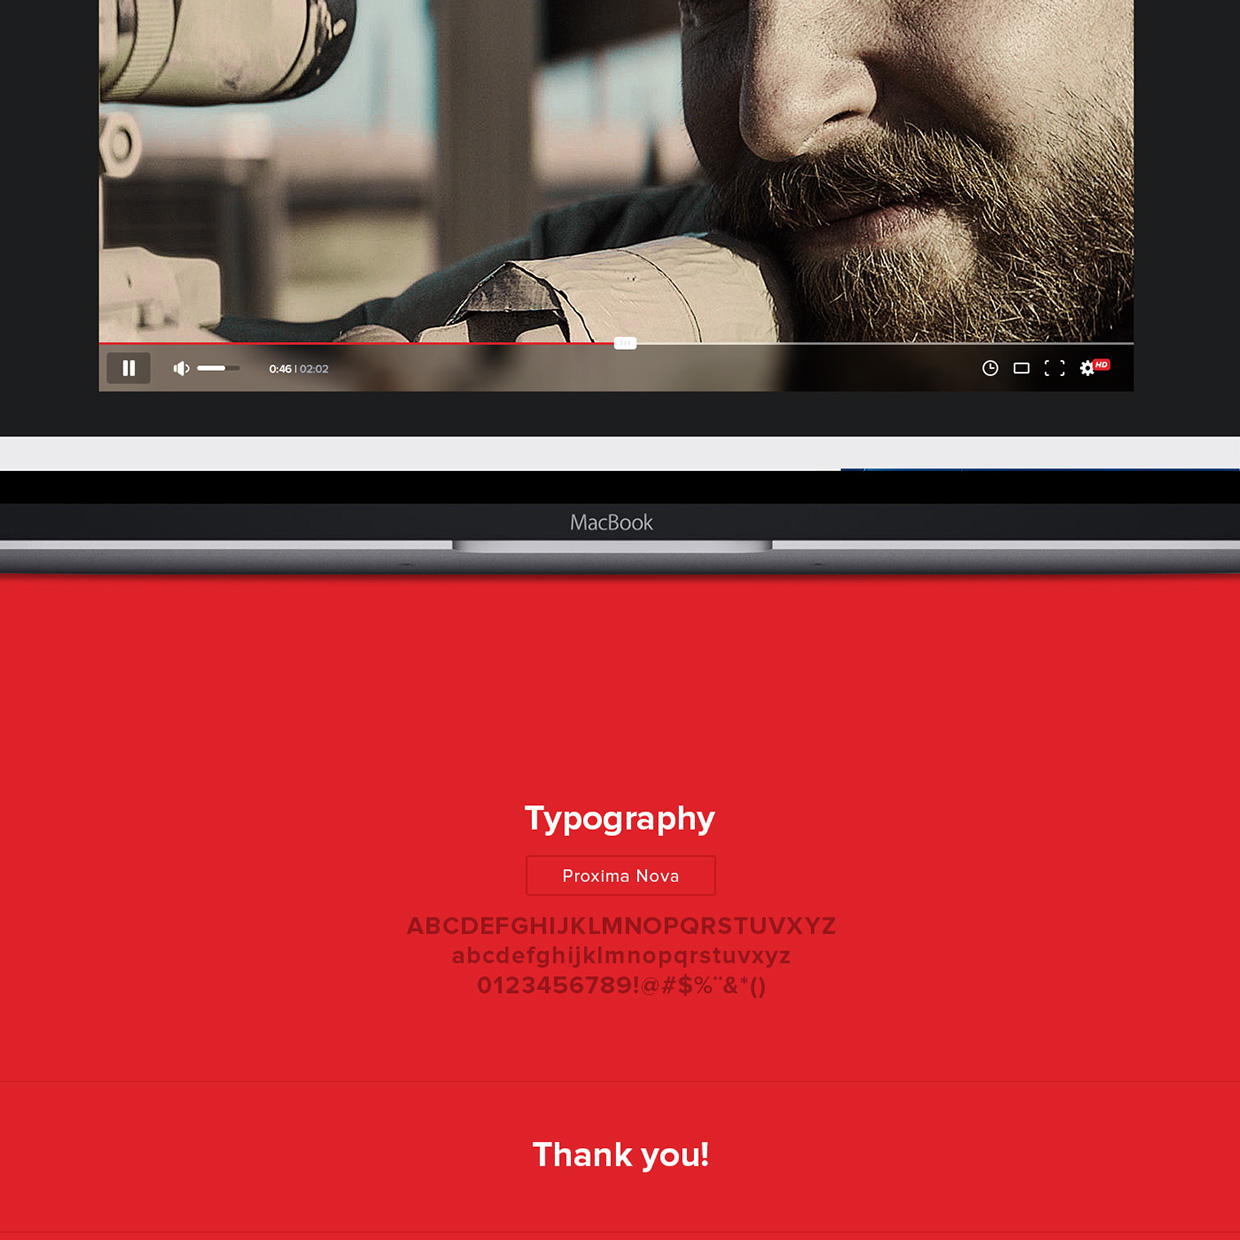 New UX Design Concept of YouTube 2015 By Lucas Nonato (13)